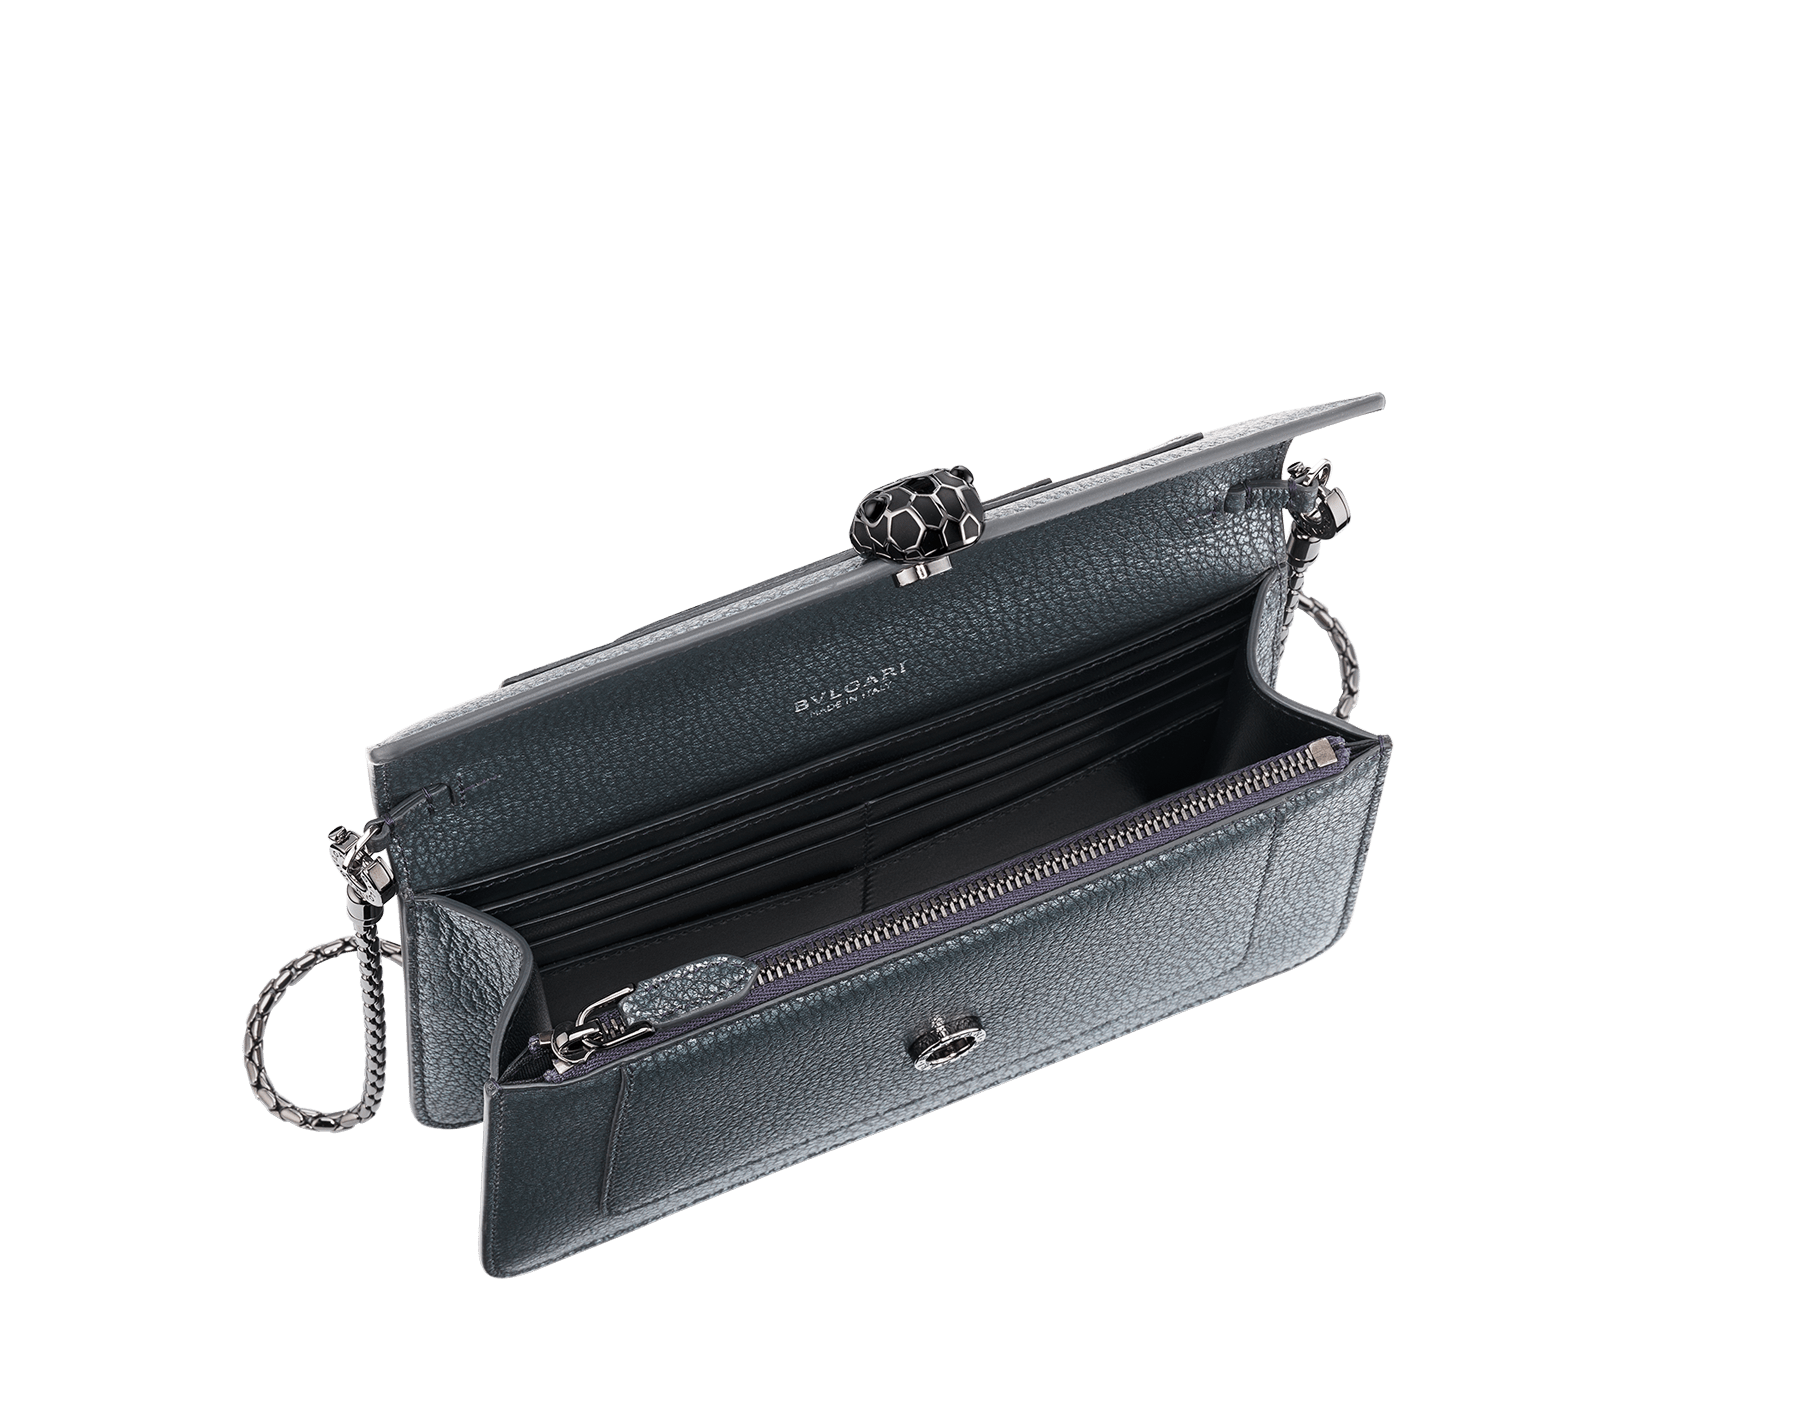 """Serpenti Forever"" new chain wallet in Charcoal Diamond gray goatskin with a pearled effect and black nappa leather. Dark ruthenium-plated brass iconic snakehead stud closure enameled in matte and shiny black, finished with black onyx eyes. SEA-CHAINPOCHETTE-PSL image 2"